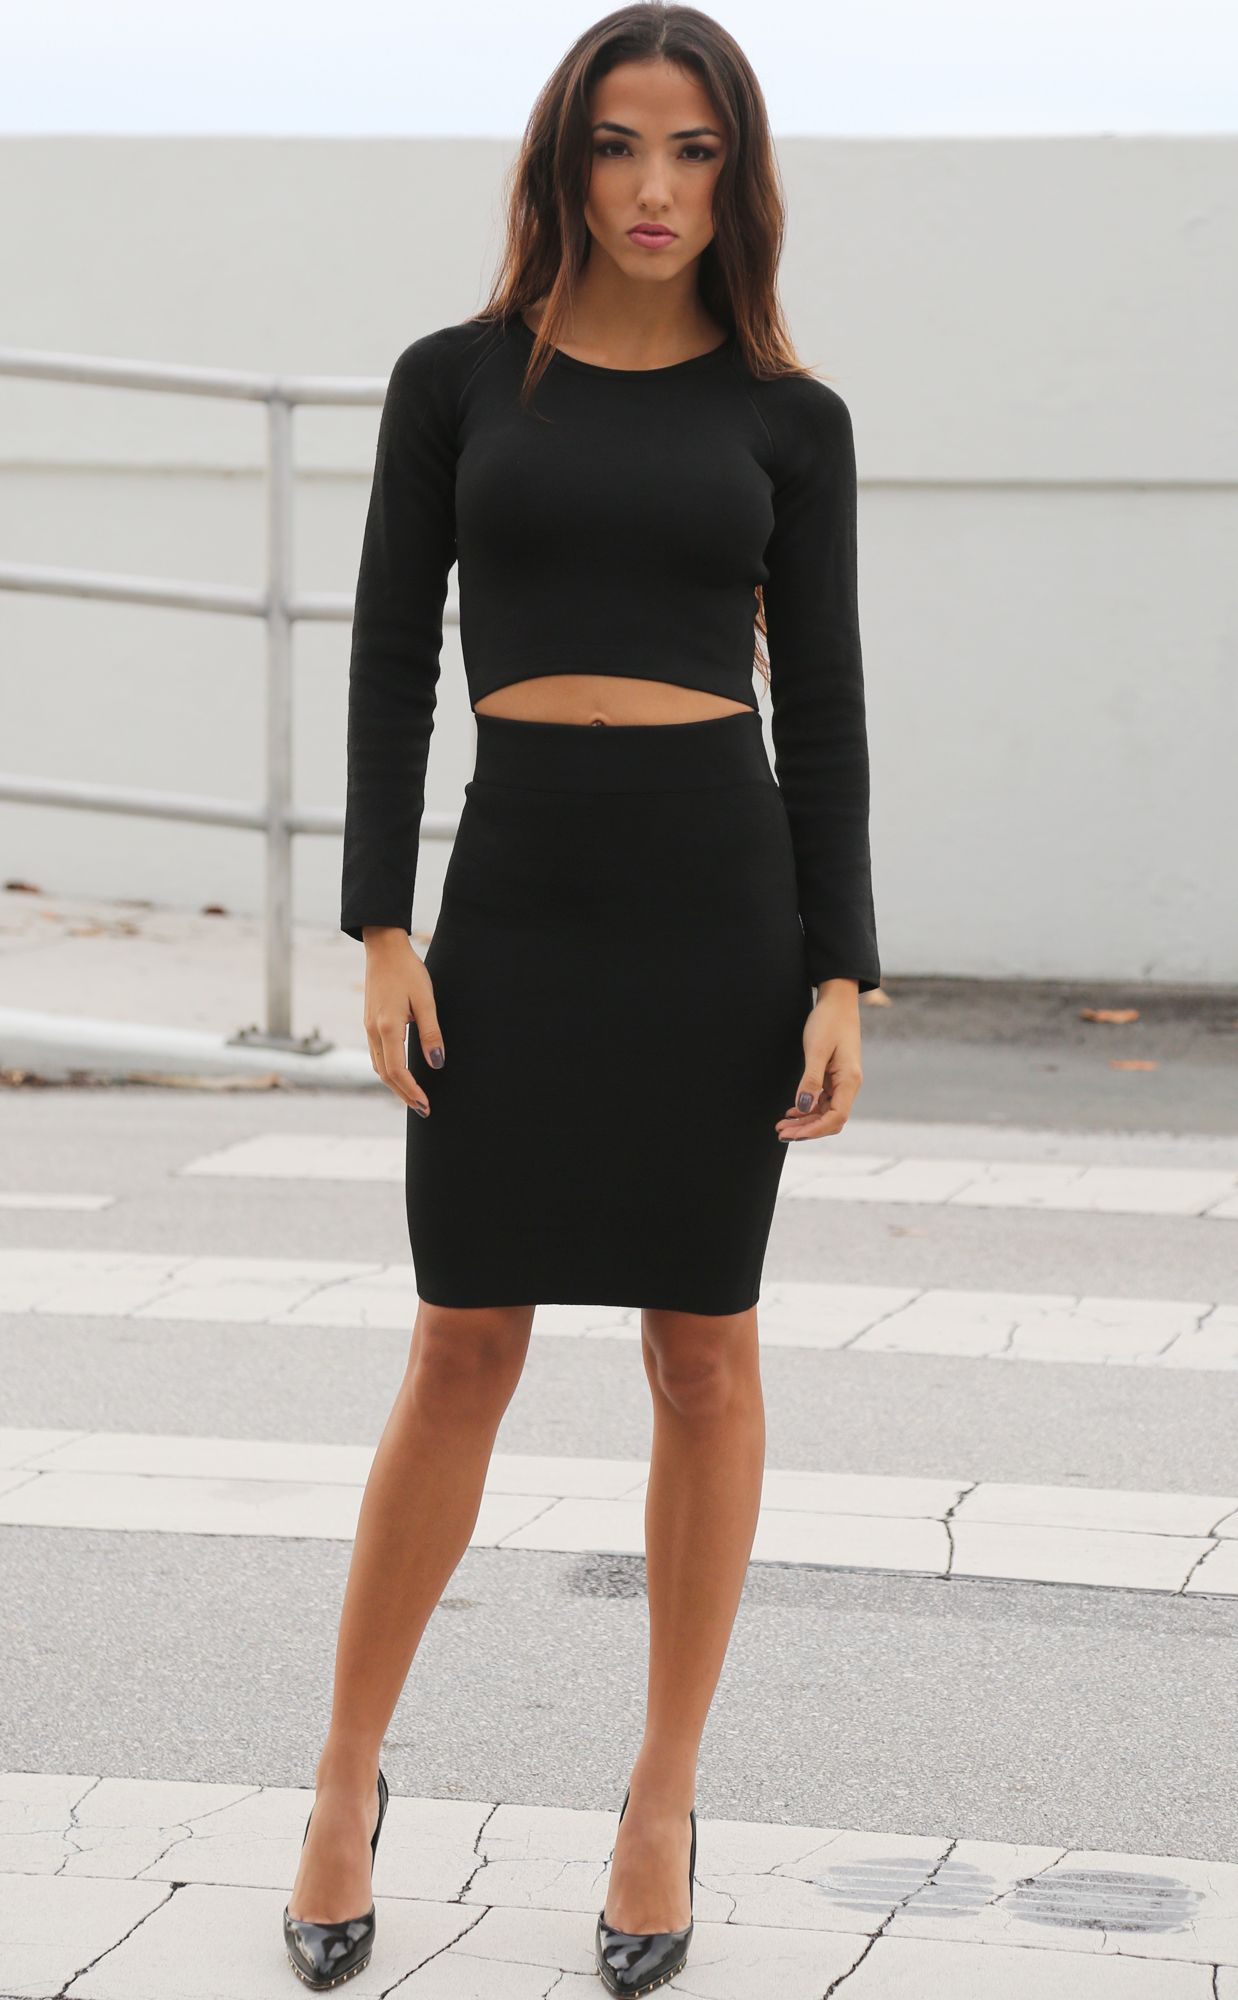 Black Skirt With Top - Dress Ala